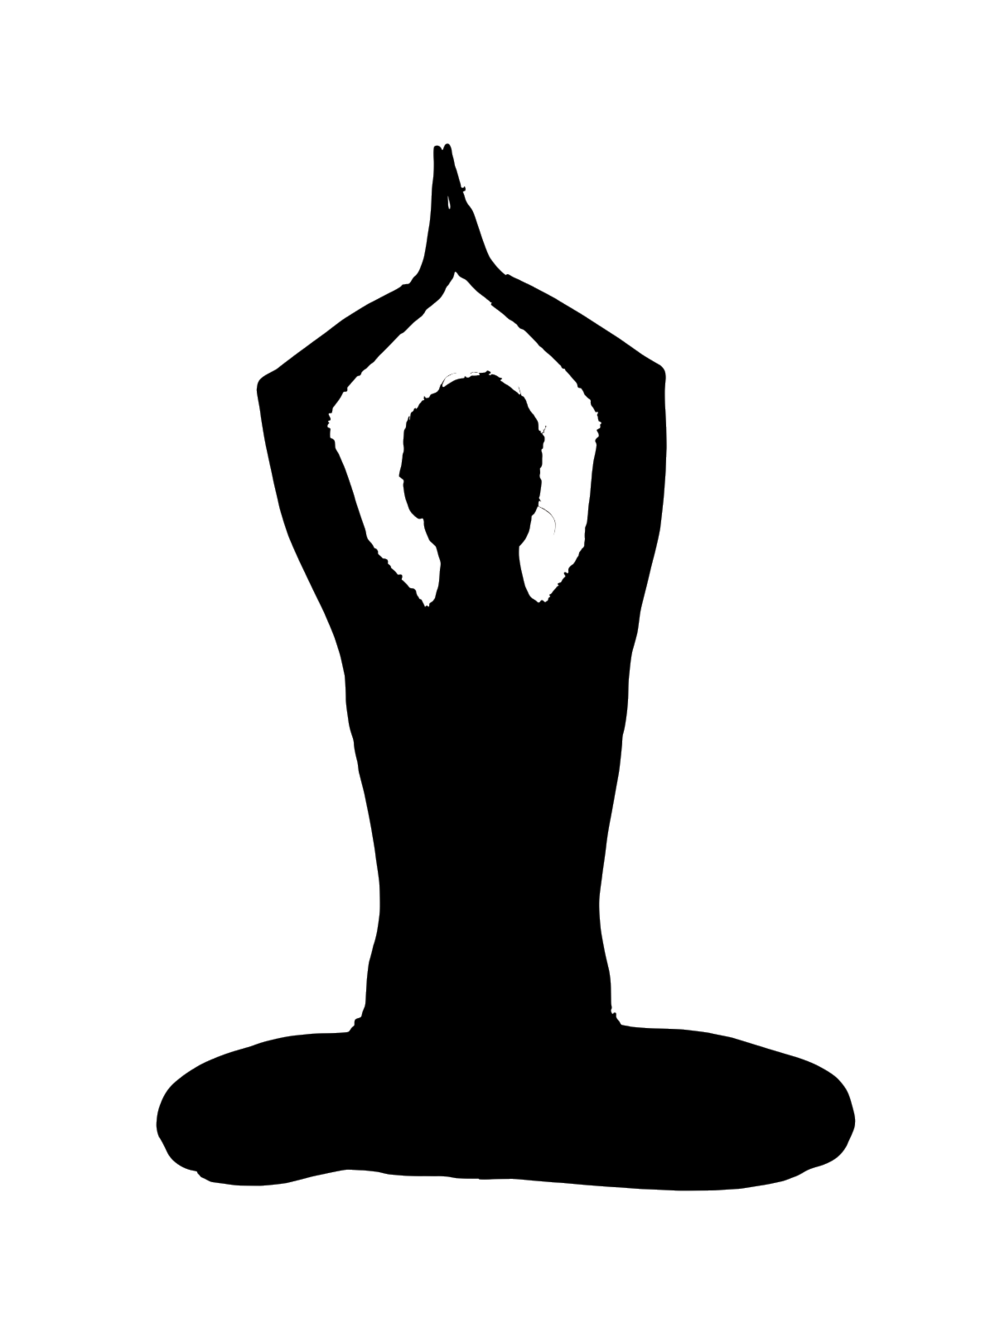 66c39eb9112704a63346160cf17eb0da_-silhouette-yoga-png-yoga-clipart-png_1207-1591.png